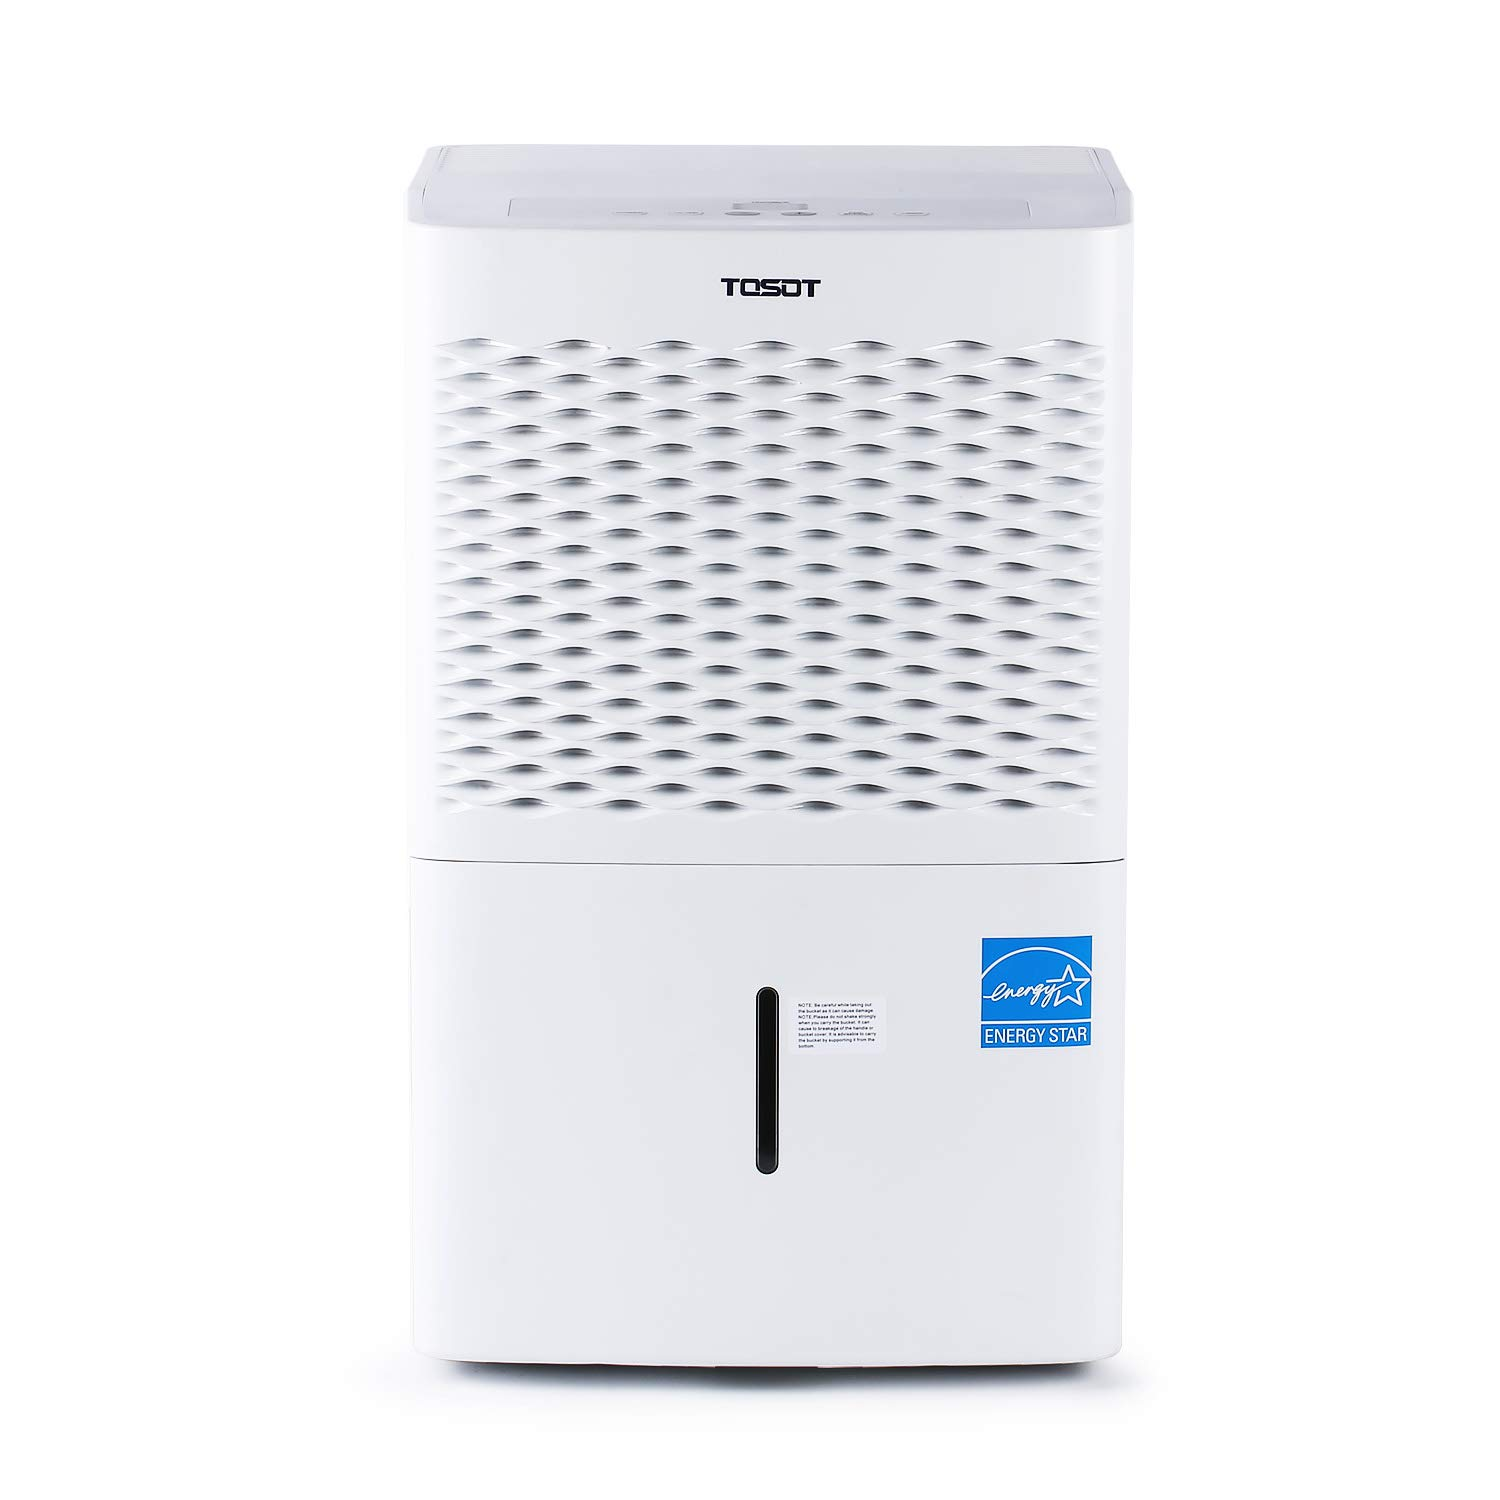 Tosot 50 Pint Dehumidifier Review